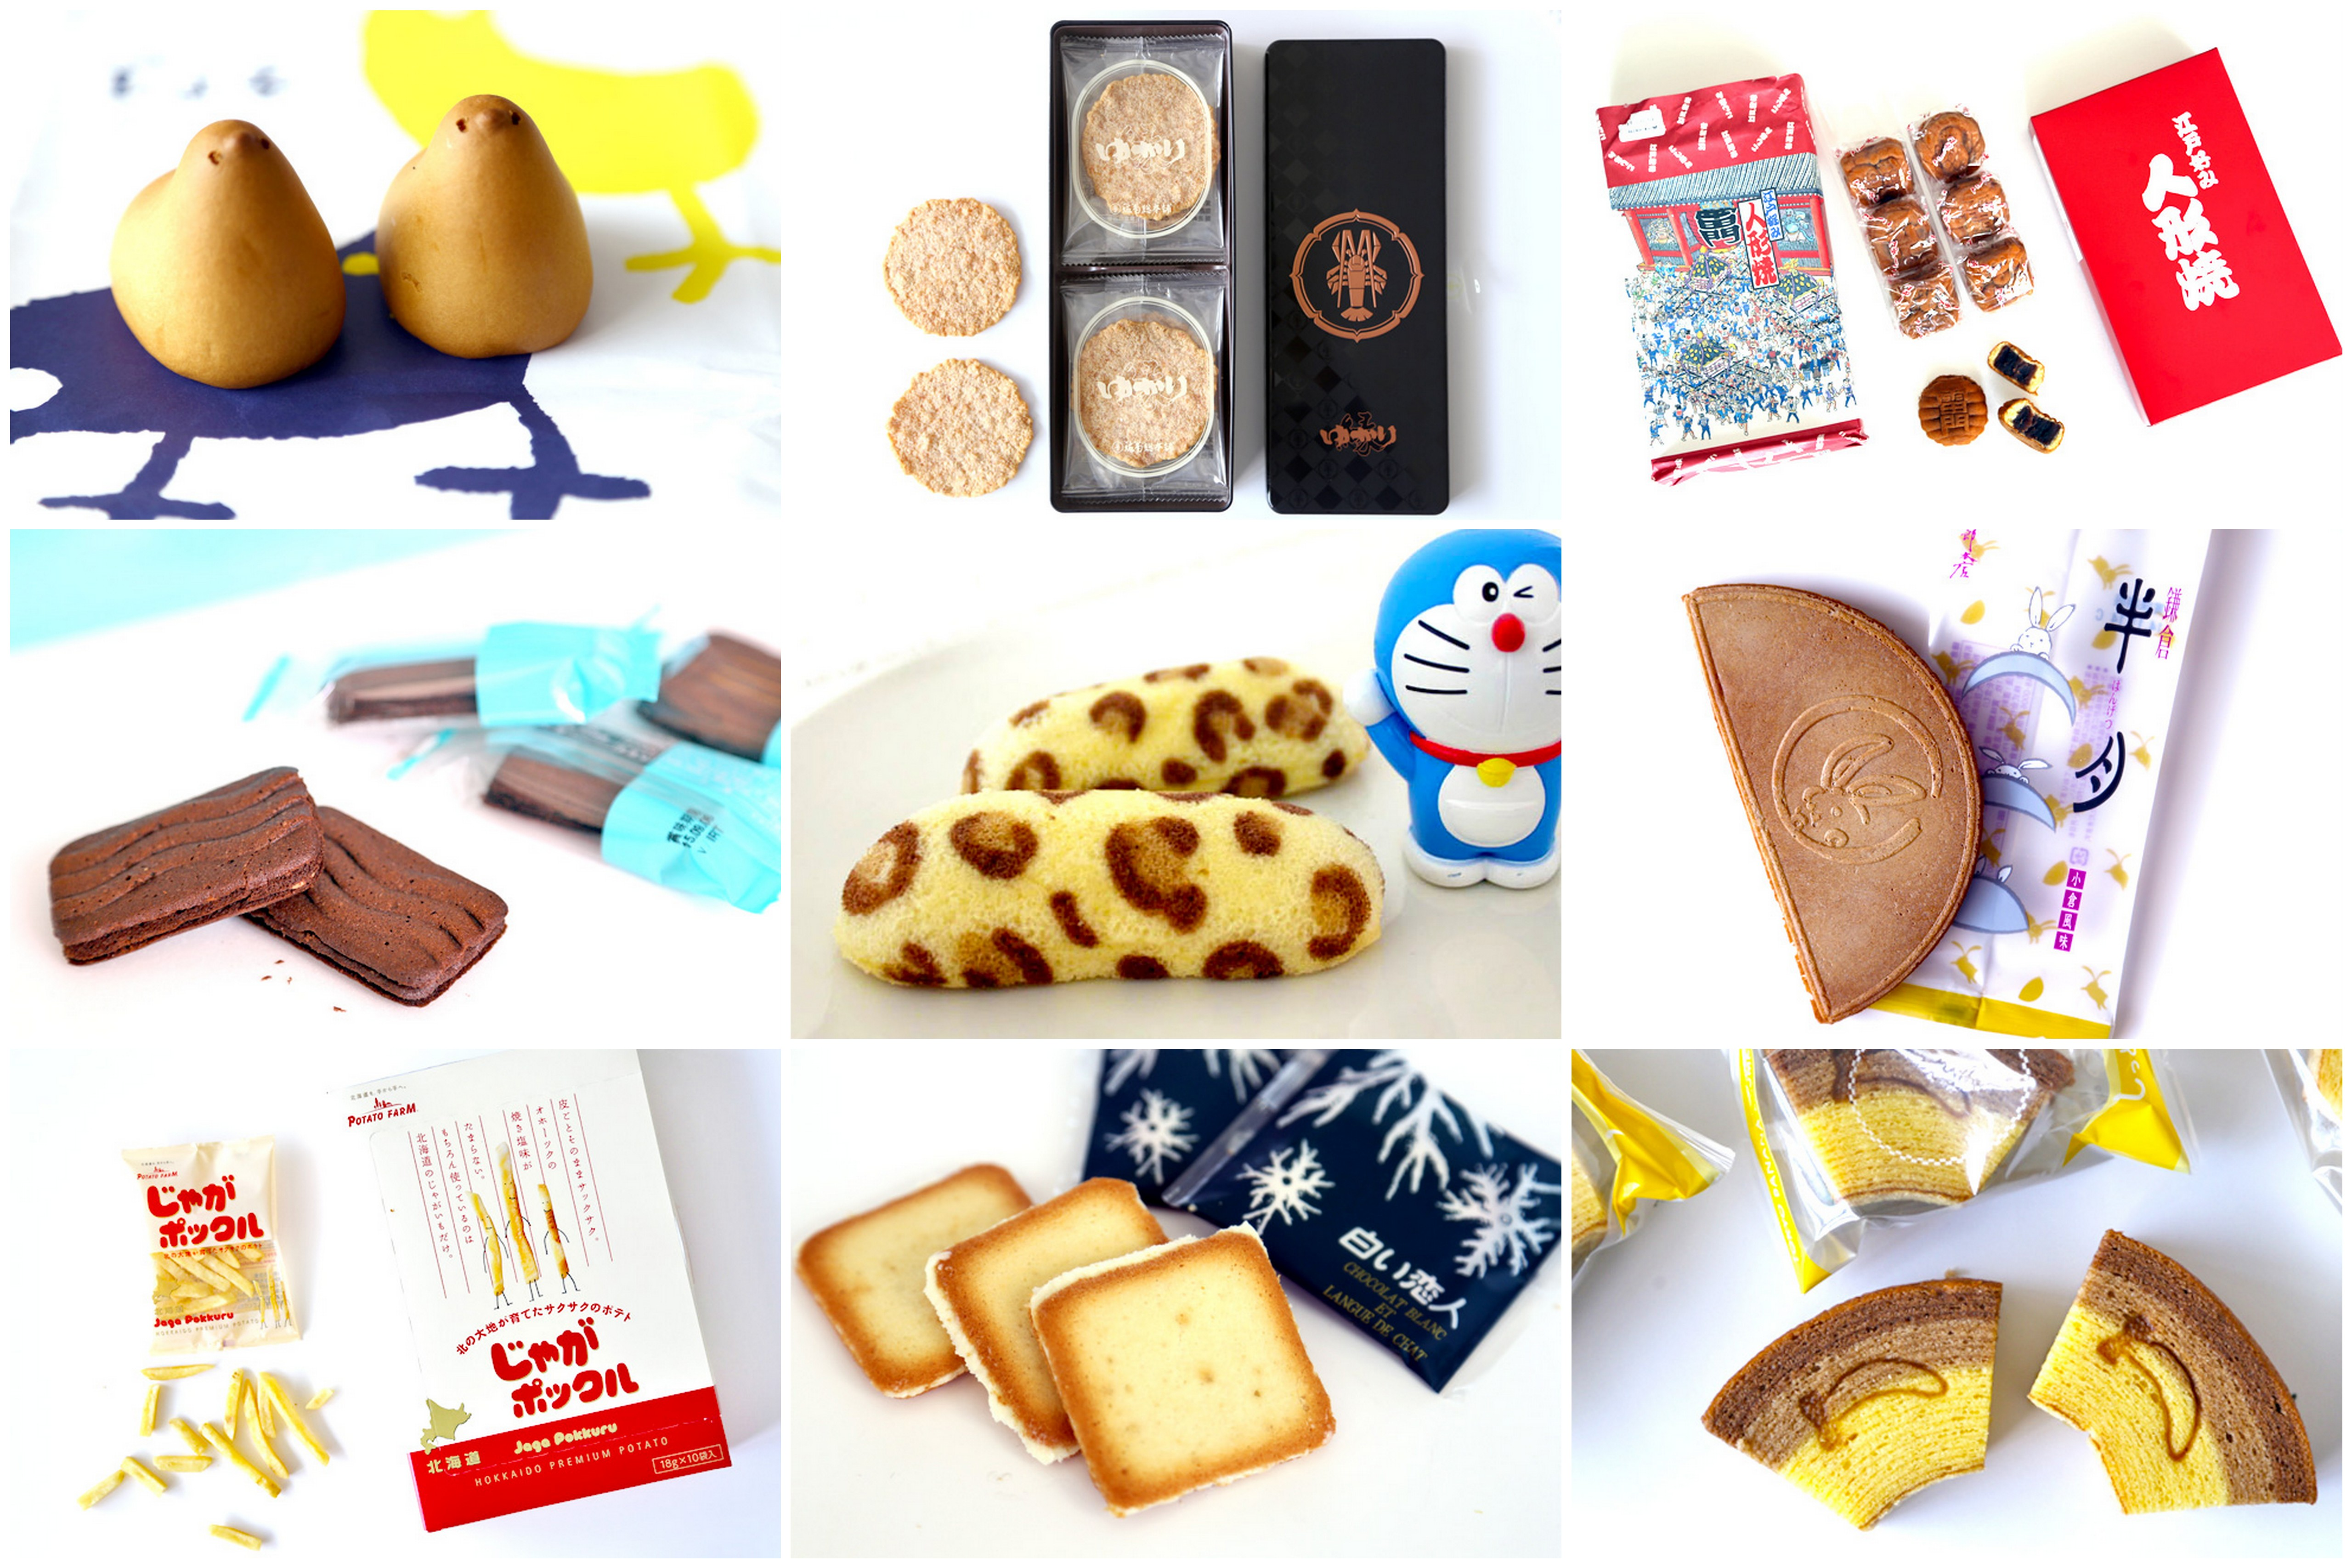 Top 10 Japanese Snacks To Get From Tokyo - Tokyo Banana, Jaga Pokkuru, Shiroi Koibito!